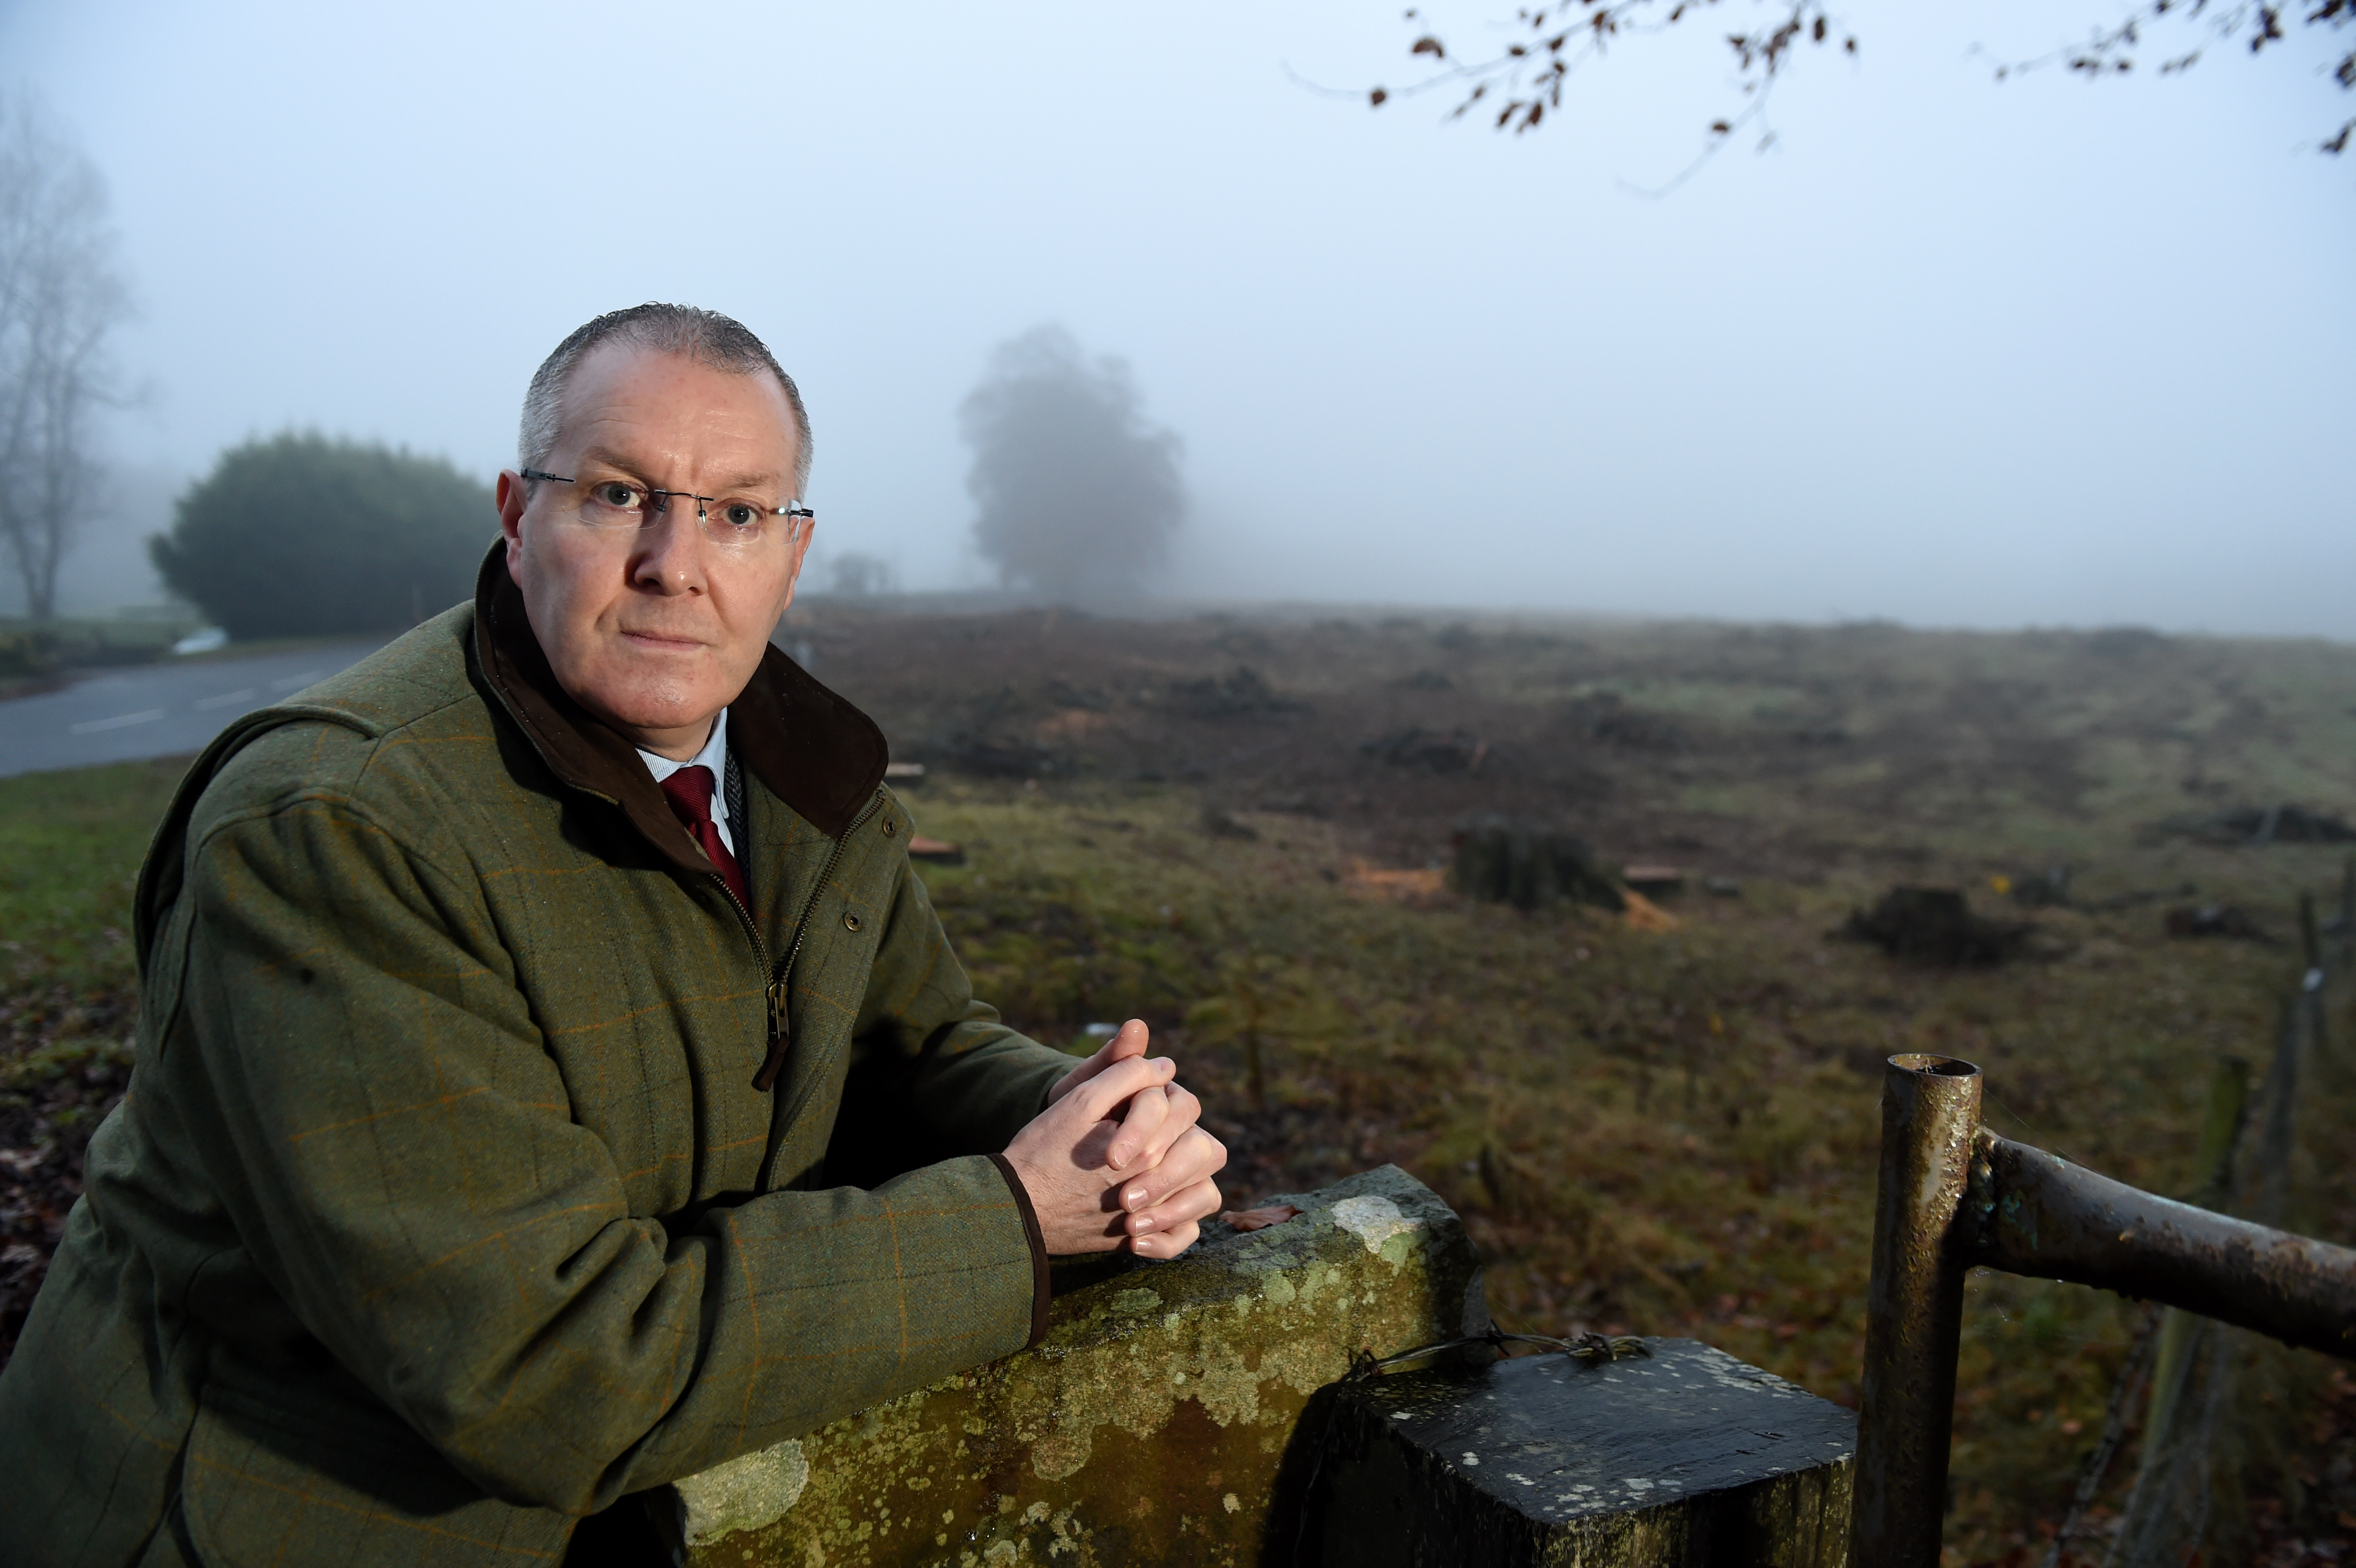 Councillor Duncan Macpherson concerned over the number of trees felled for a housing development off Drumossie Road.